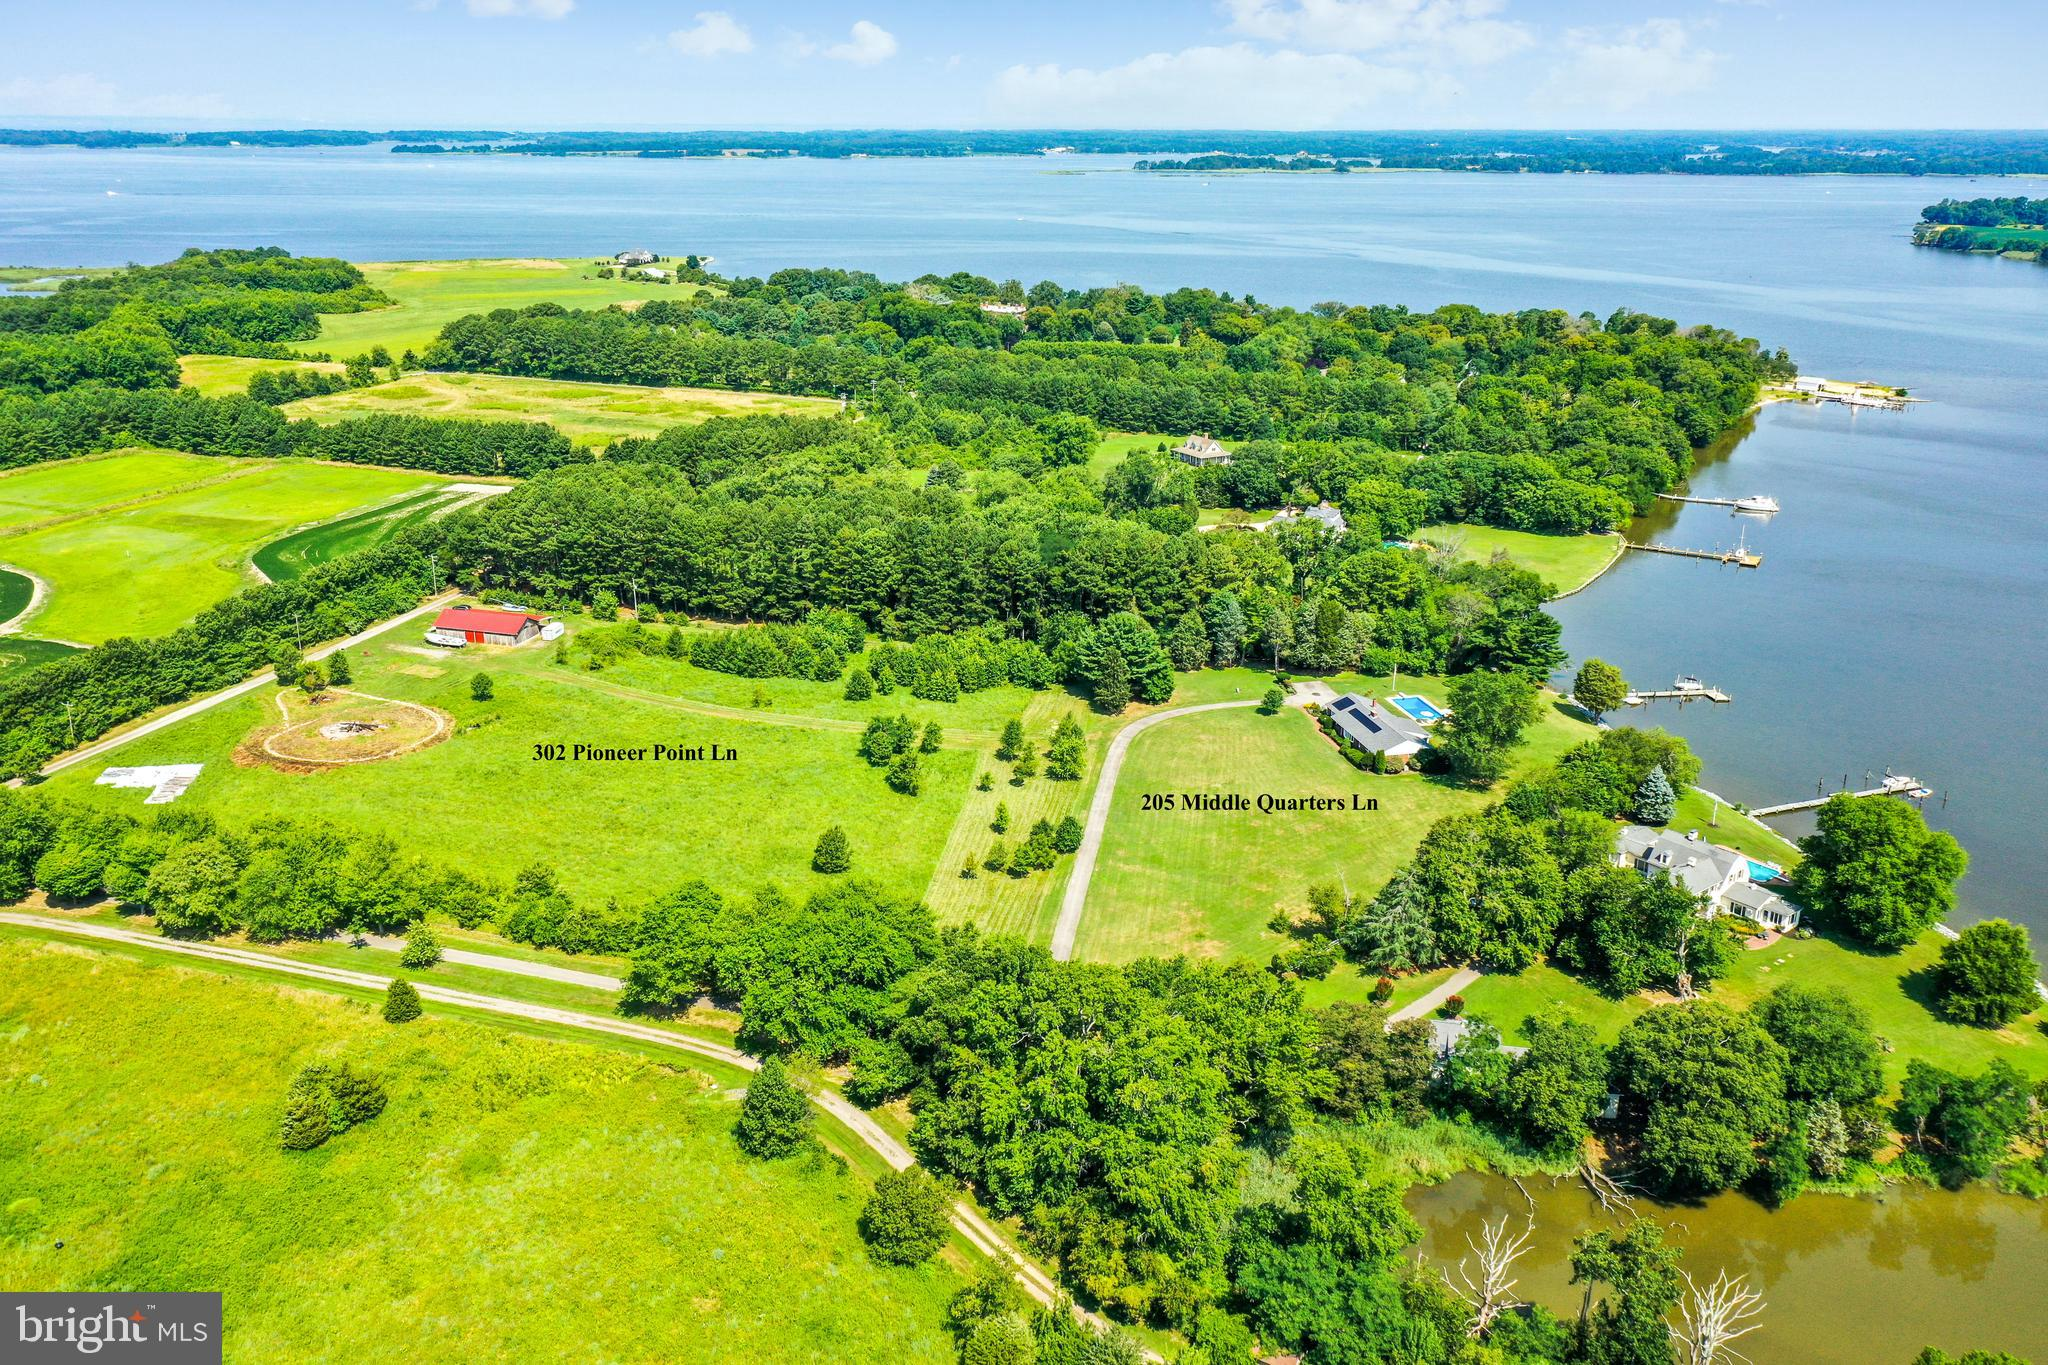 Being sold together with Land MLS # MDQA2000402  Own an Eastern Shore oasis on the Corsica River in